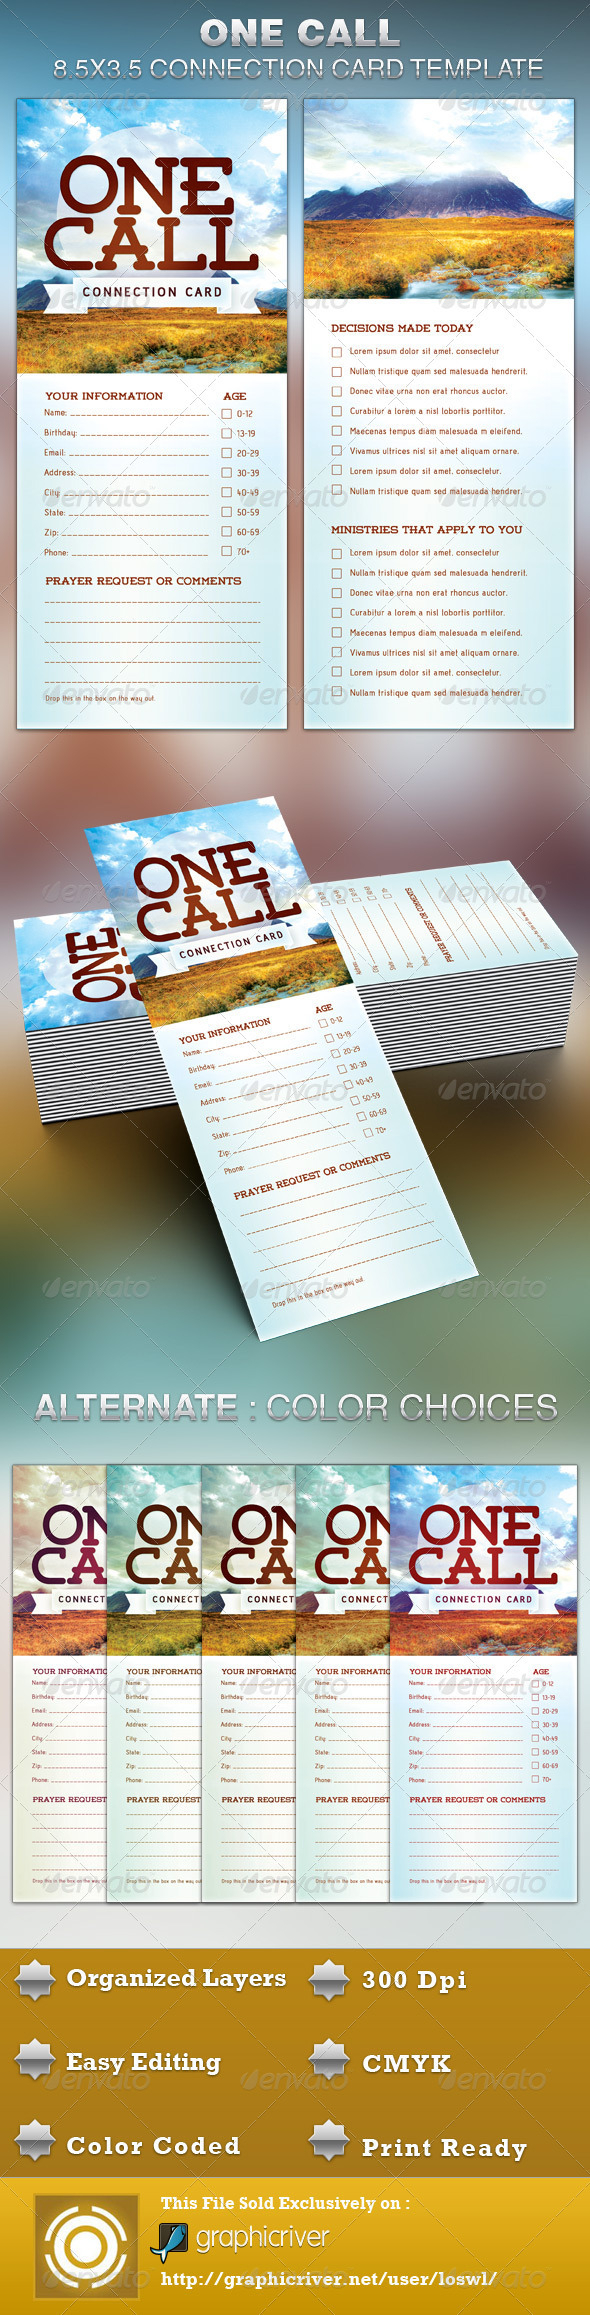 The One Call Church Connection Card Template Is Great For Regarding Decision Card Template